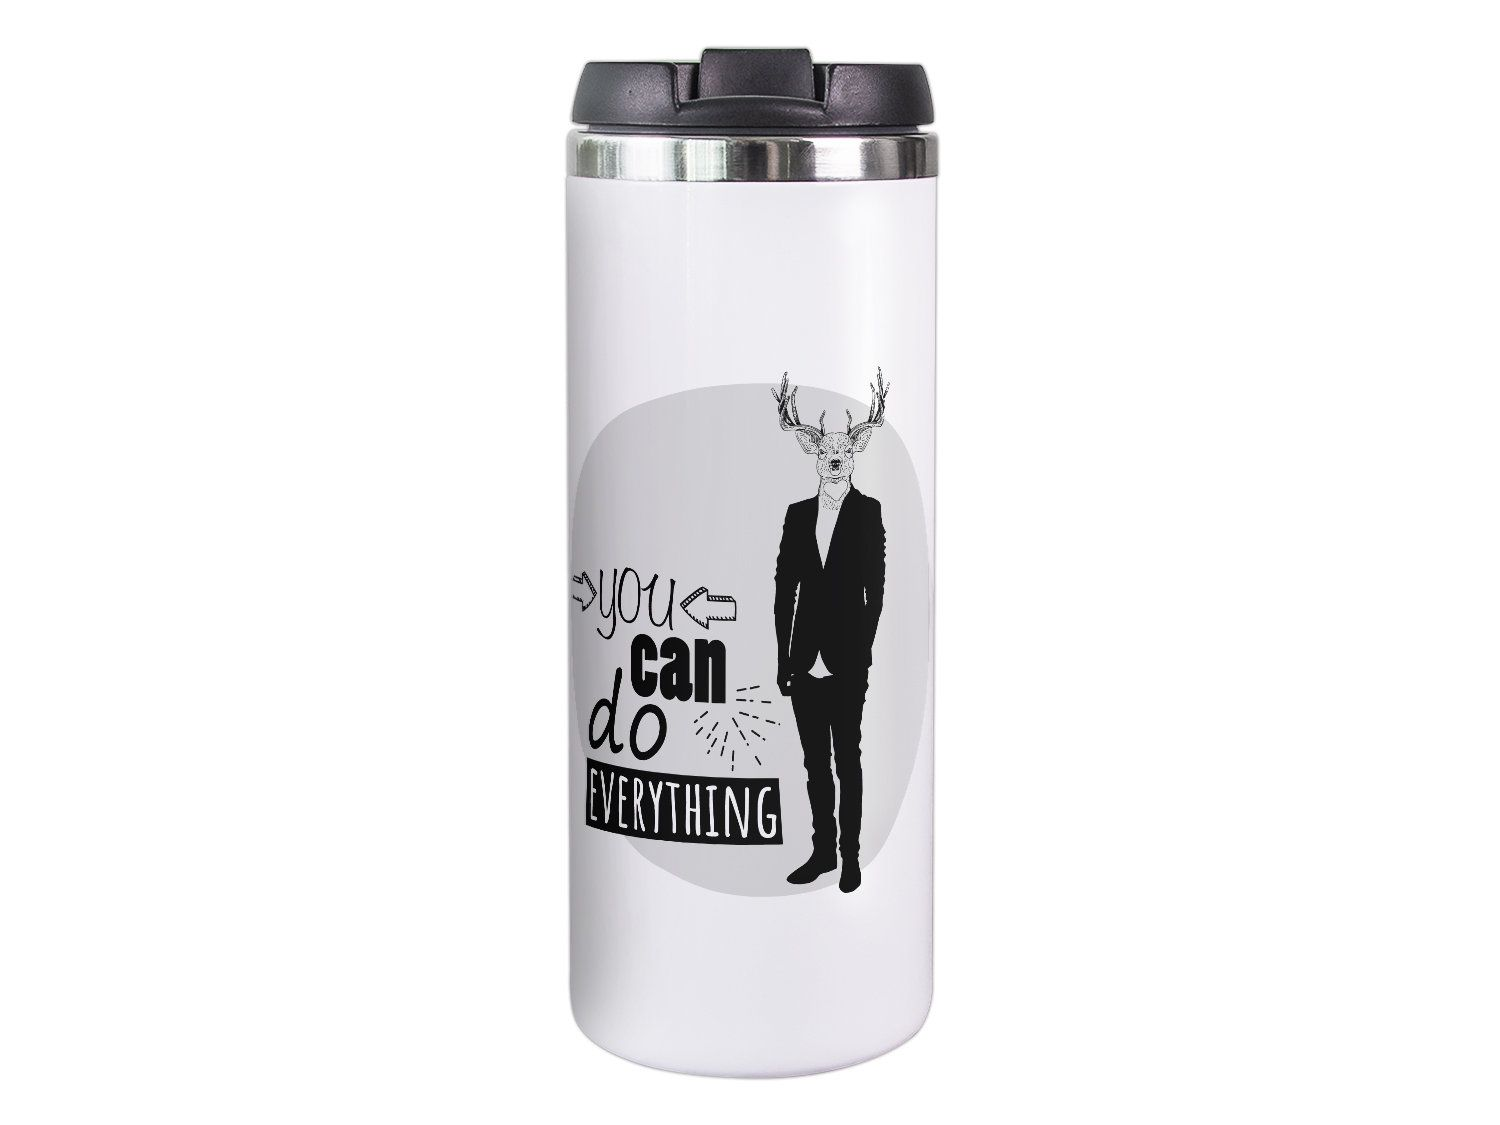 Thermo Mug Elk Coffee Mug With Saying Coffee To Go Mug Gift For Dad For Him Father S Day Colleague Insulated Thermo Mug On The Go In 2020 Mugs Coffee To Go